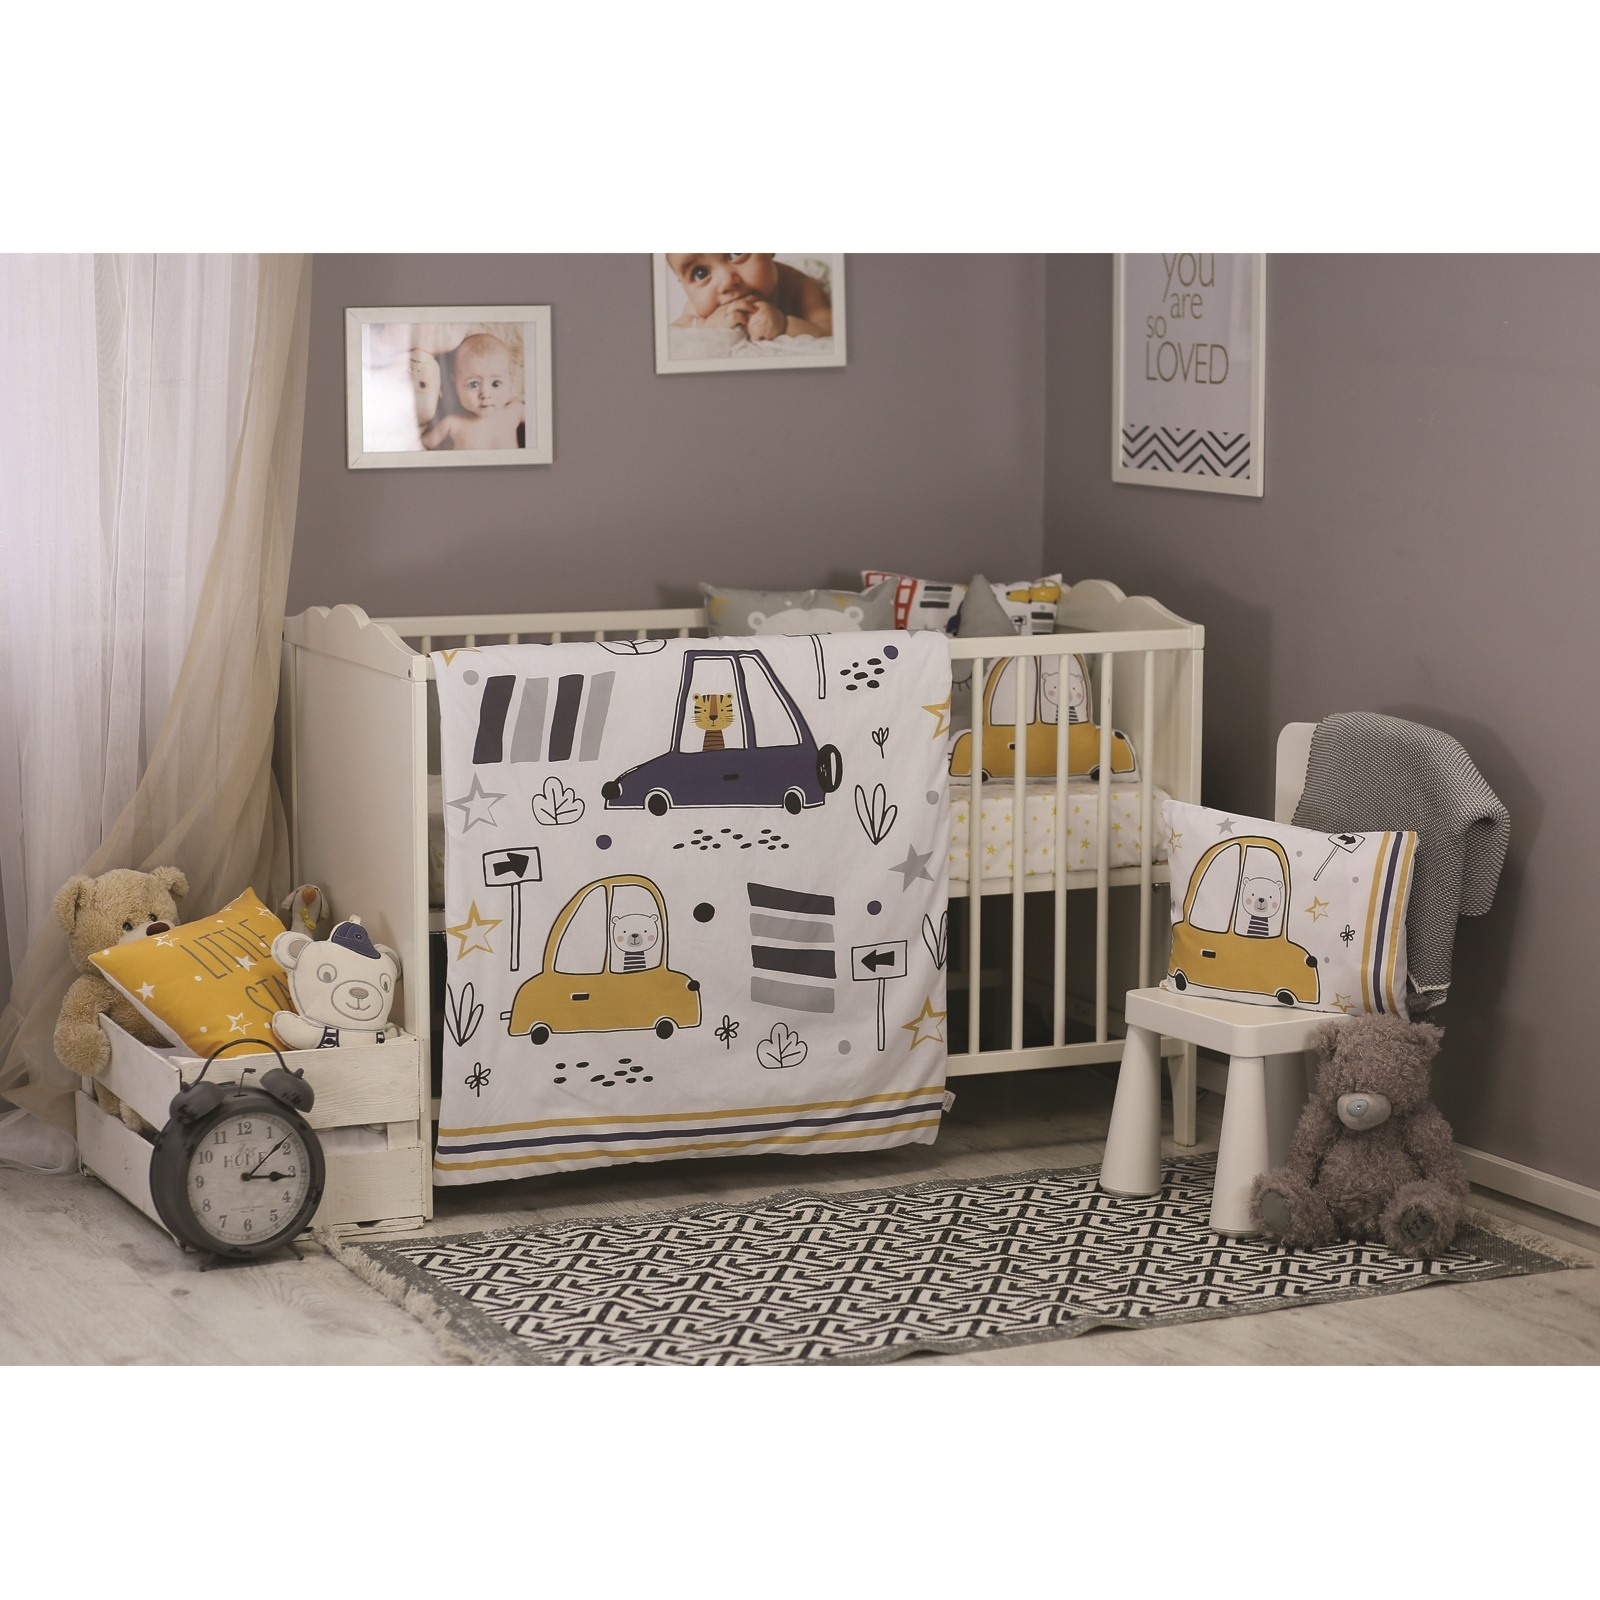 Ebebek Apolena Baby Cars Bed Duvet Cover & Pillow Case 2 Pcs Set